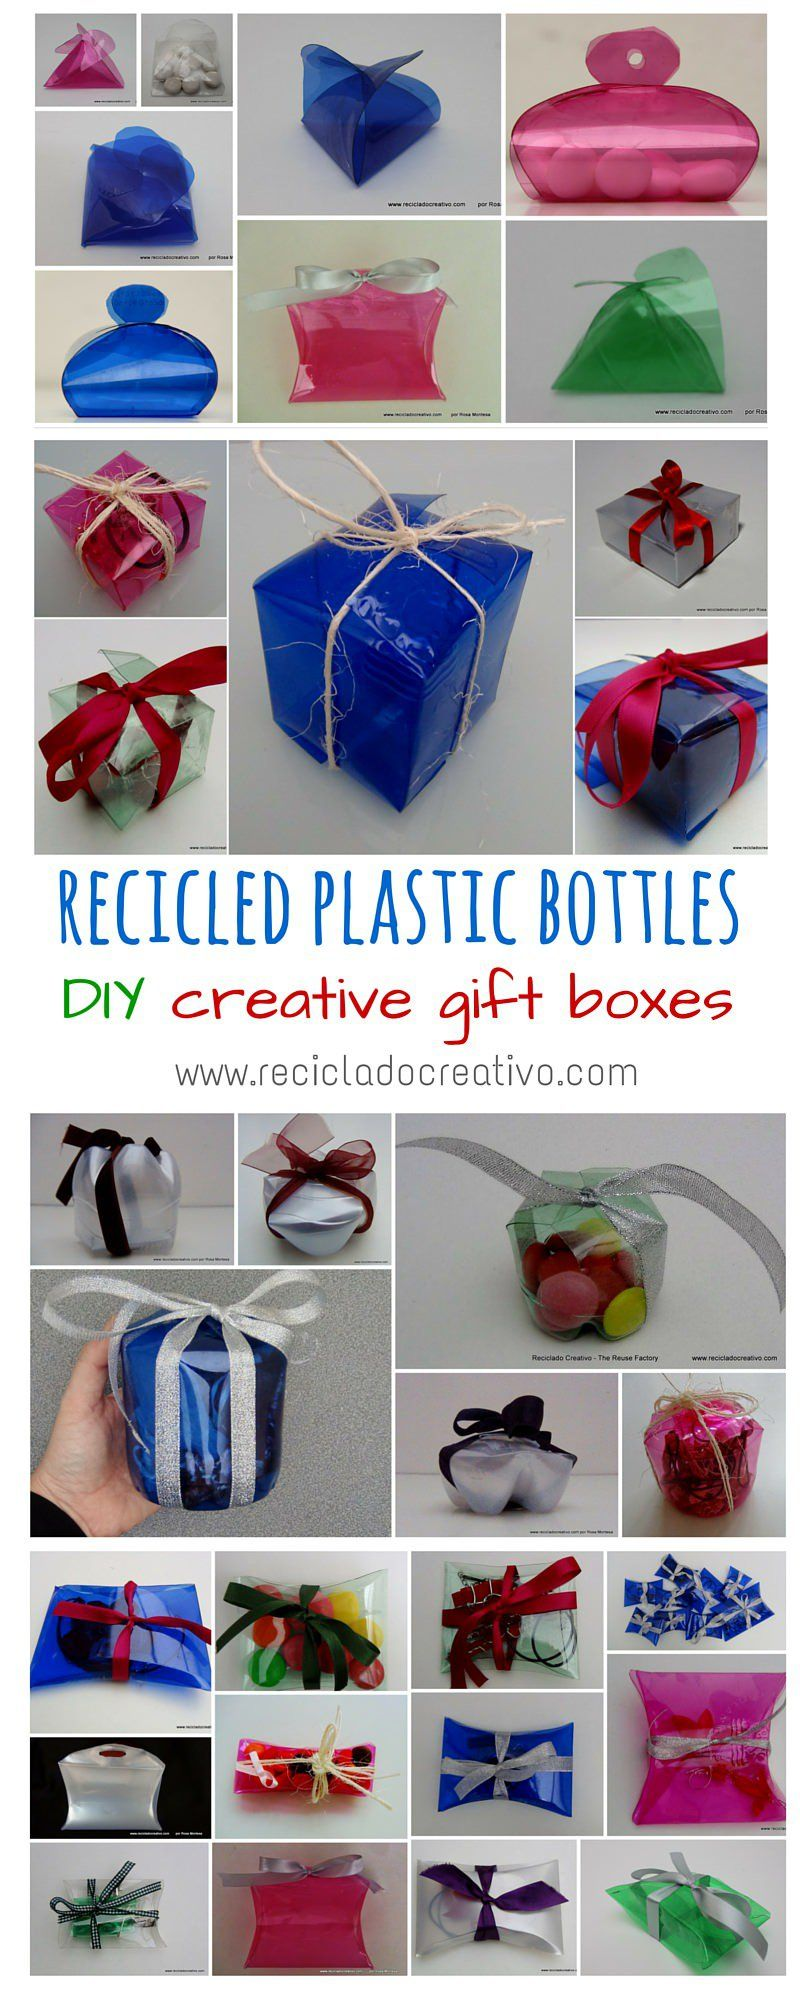 Amazing gift boxes made out of recycled plastic bottles for What can we make out of plastic bottles